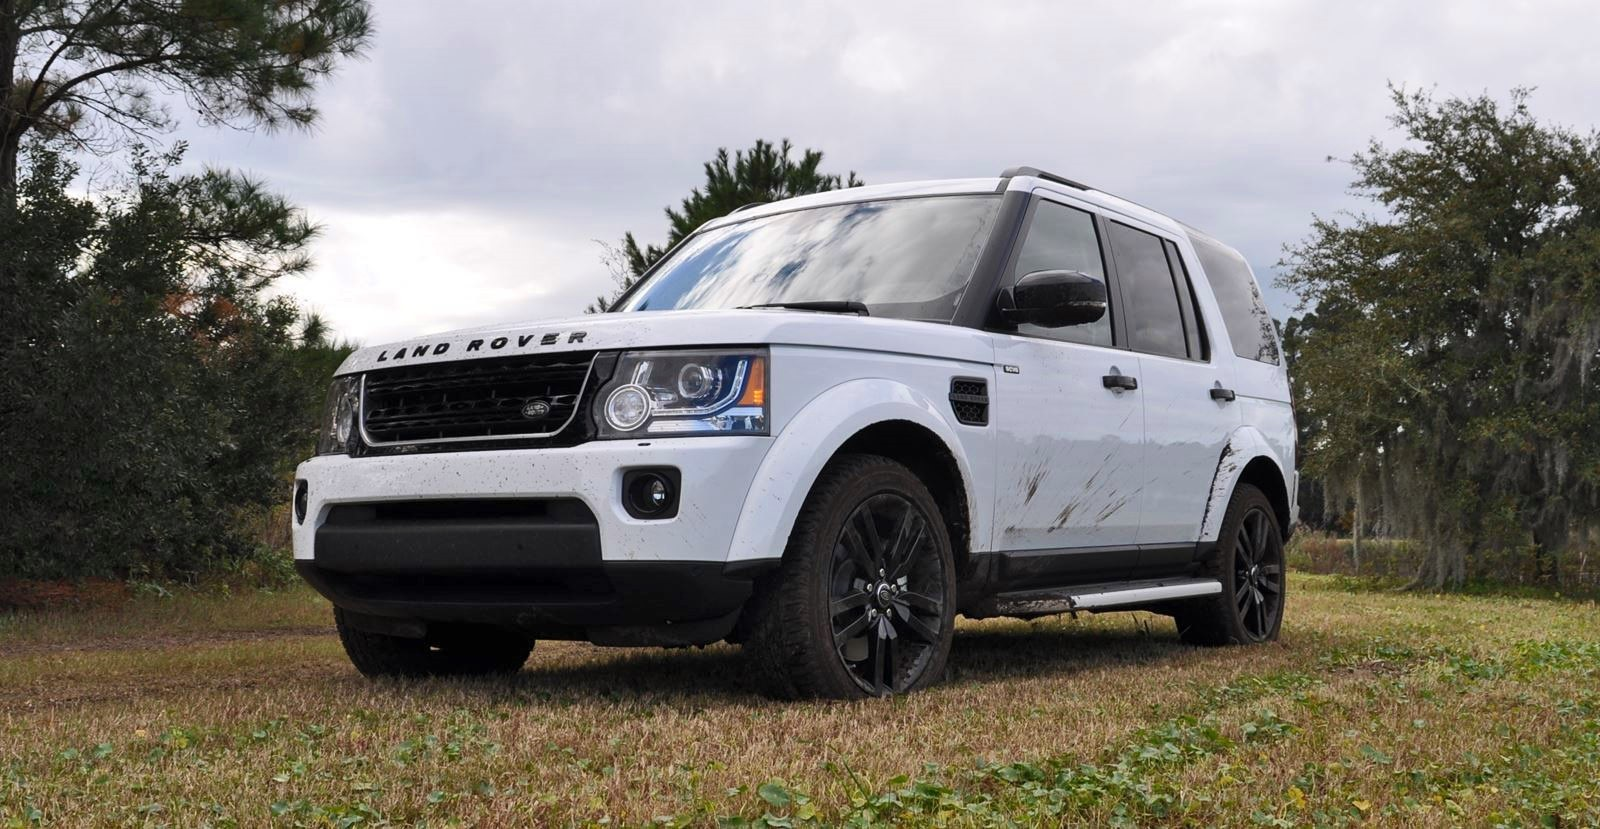 package discovery review land black hse landrover image houston previous rover